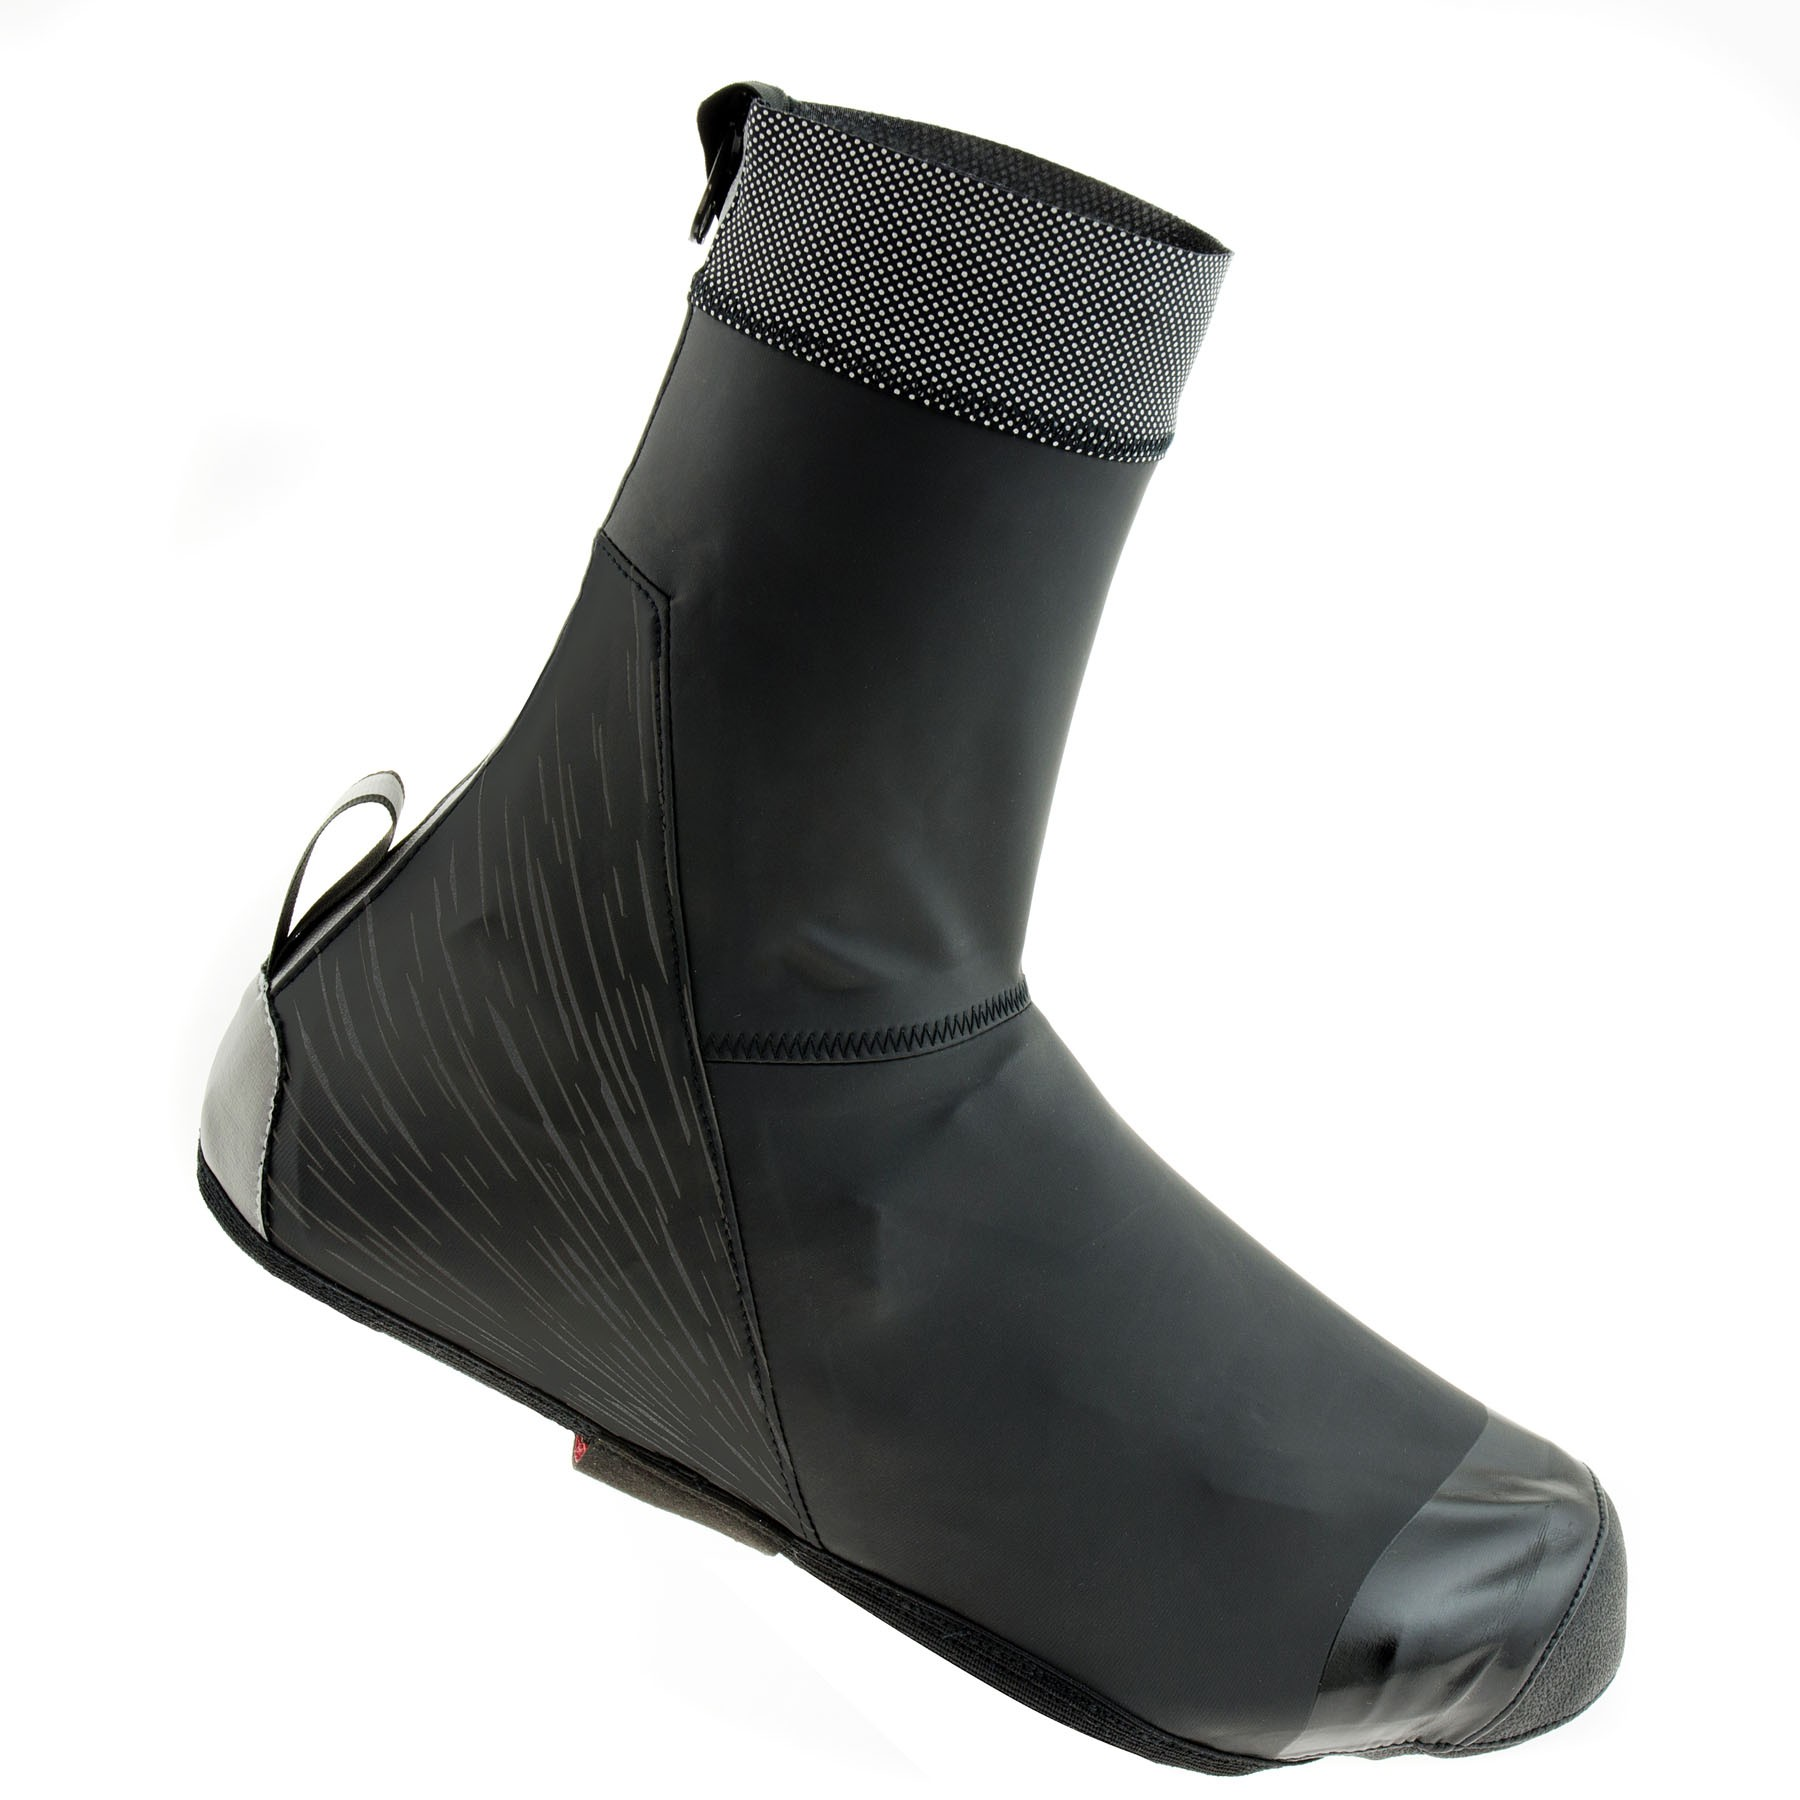 Agu pro thermo neoprene couvre chaussure noir